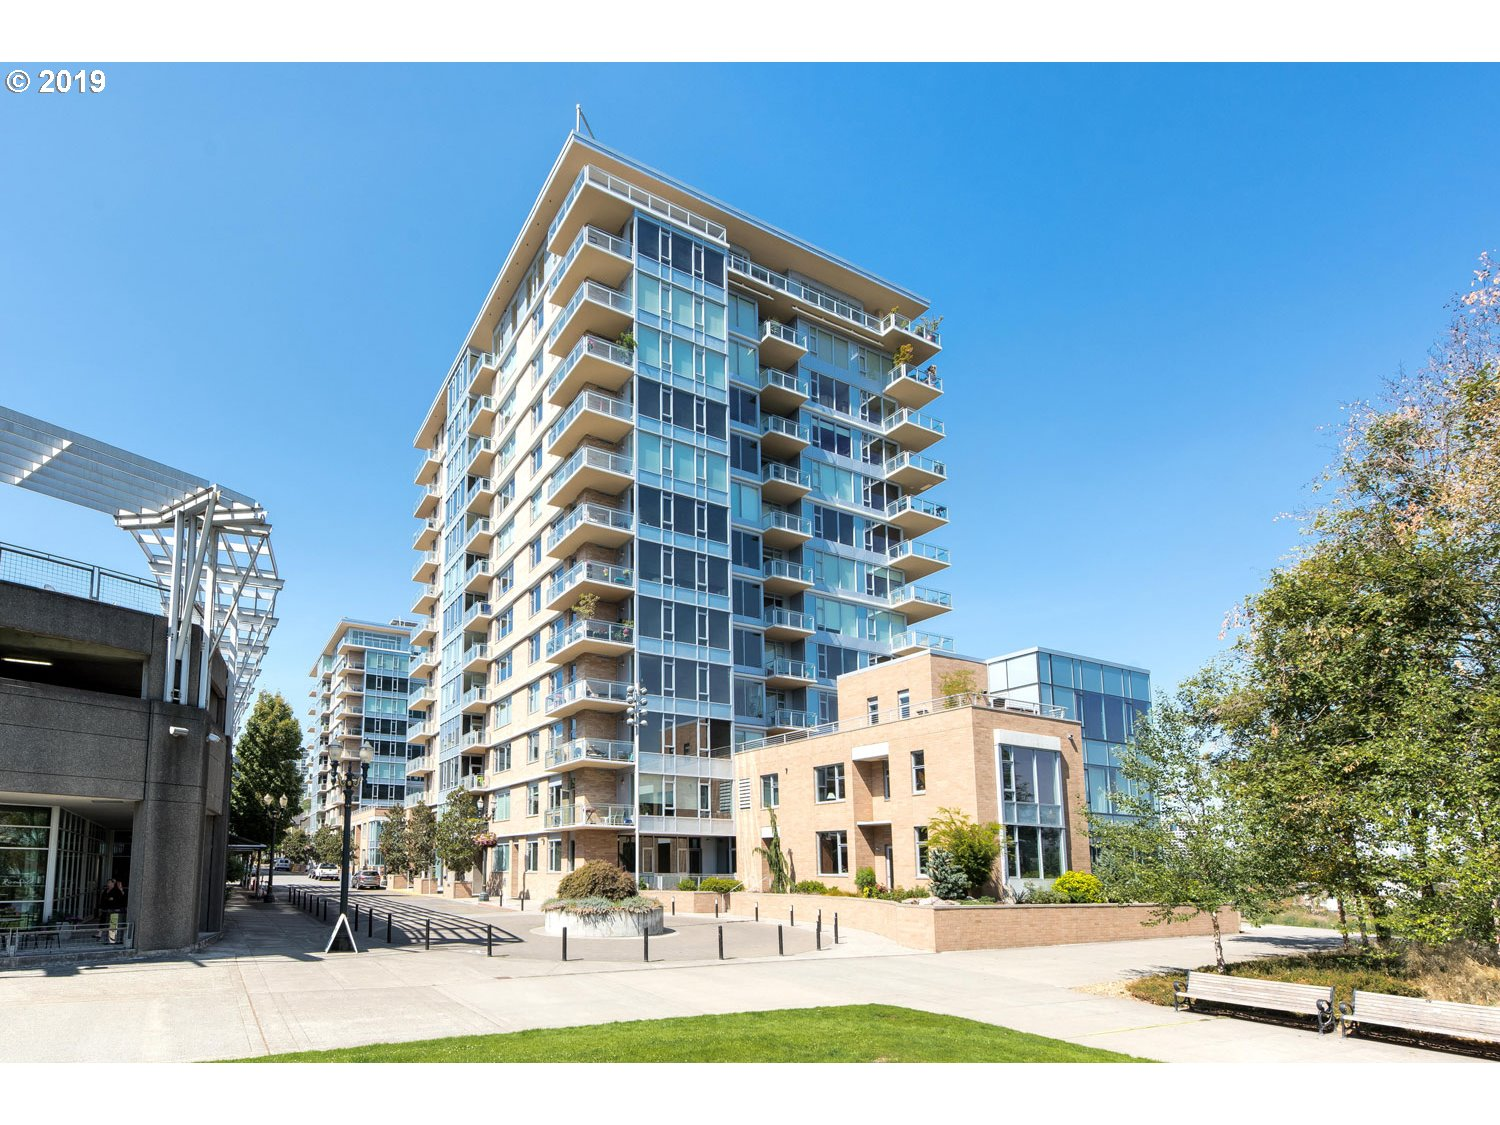 The views from this beautiful 9th floor unit are stunning...must see! Penthouse views without penthouse pricing. Views of Willamette River, marina and bridge. Incredible open floor plan allows you to take in those views. Hands down...best views of any available unit at The Strand!